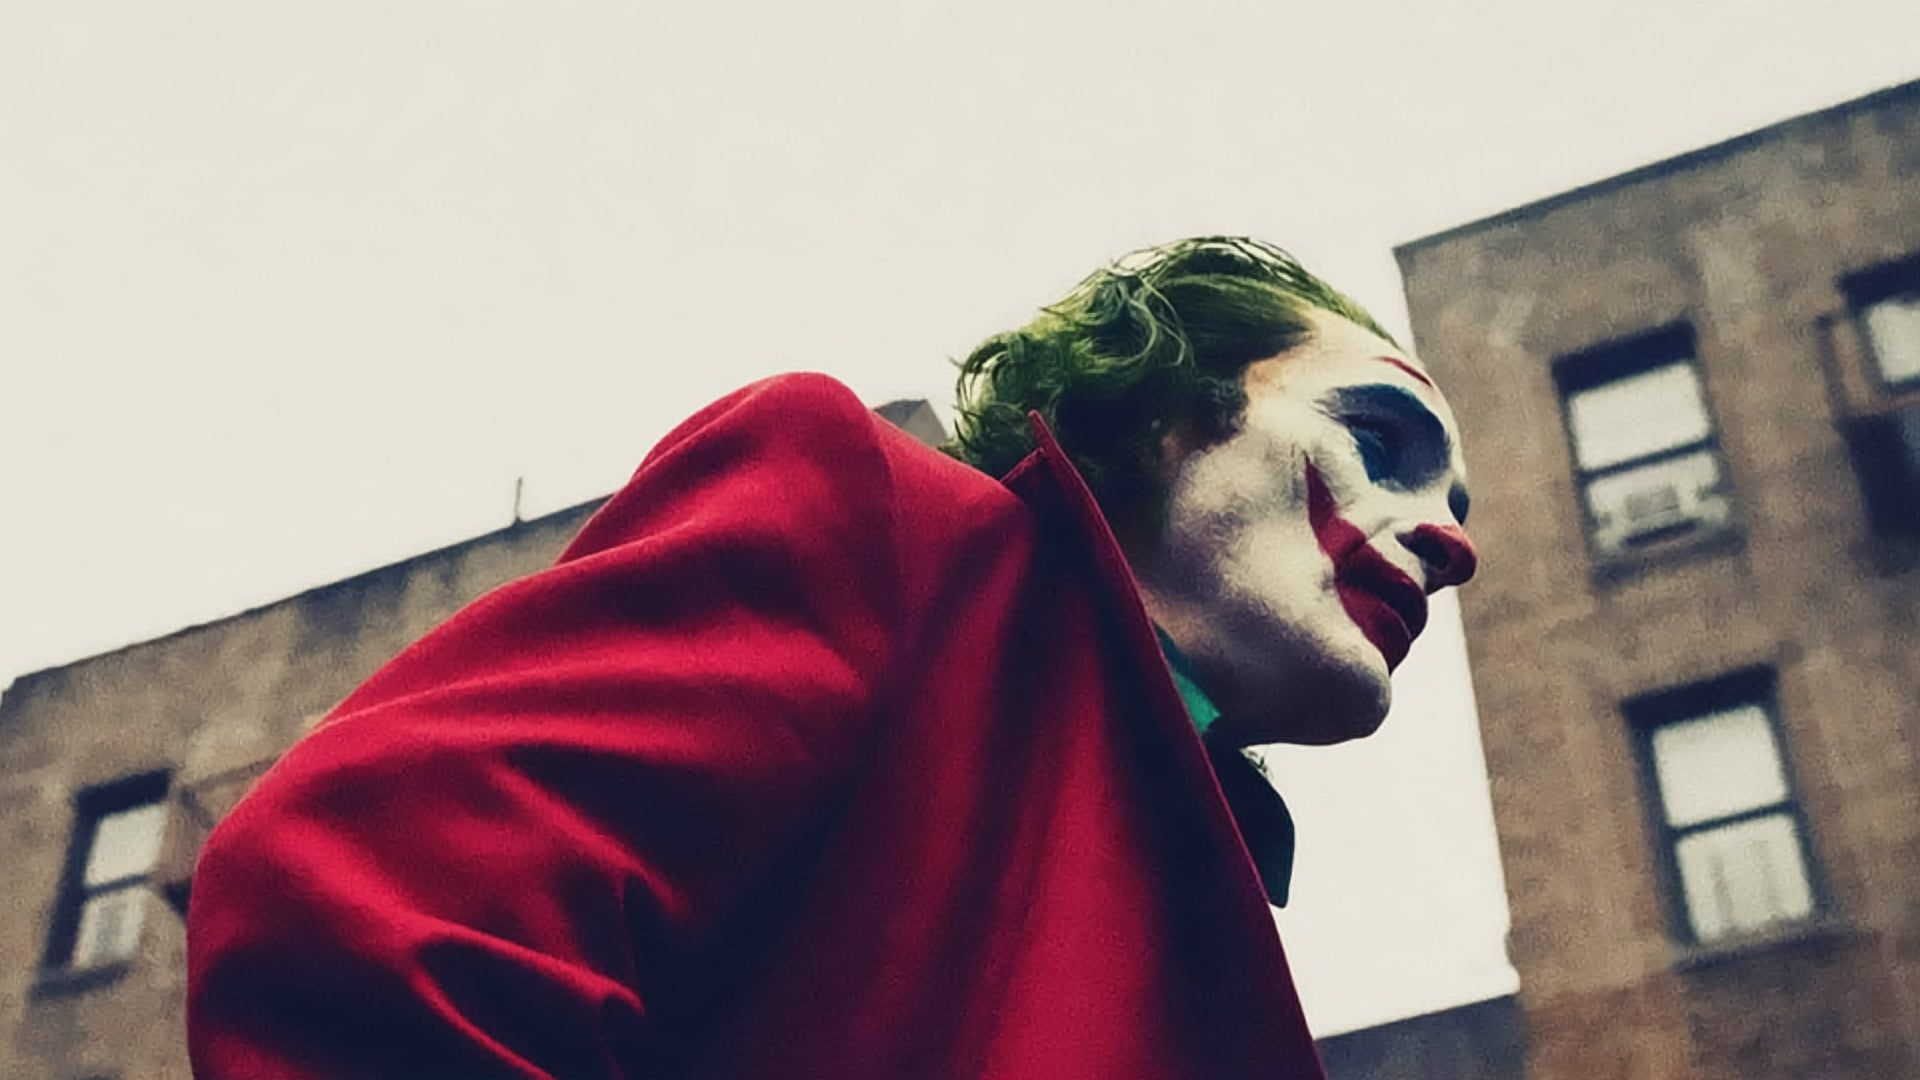 Joker 2019 Movie Joker Joaquin Phoenix Arthur Fleck Movies 1080p Wallpaper Hdwallpaper Deskt Joker Iphone Wallpaper Joker Wallpapers Joker Hd Wallpaper